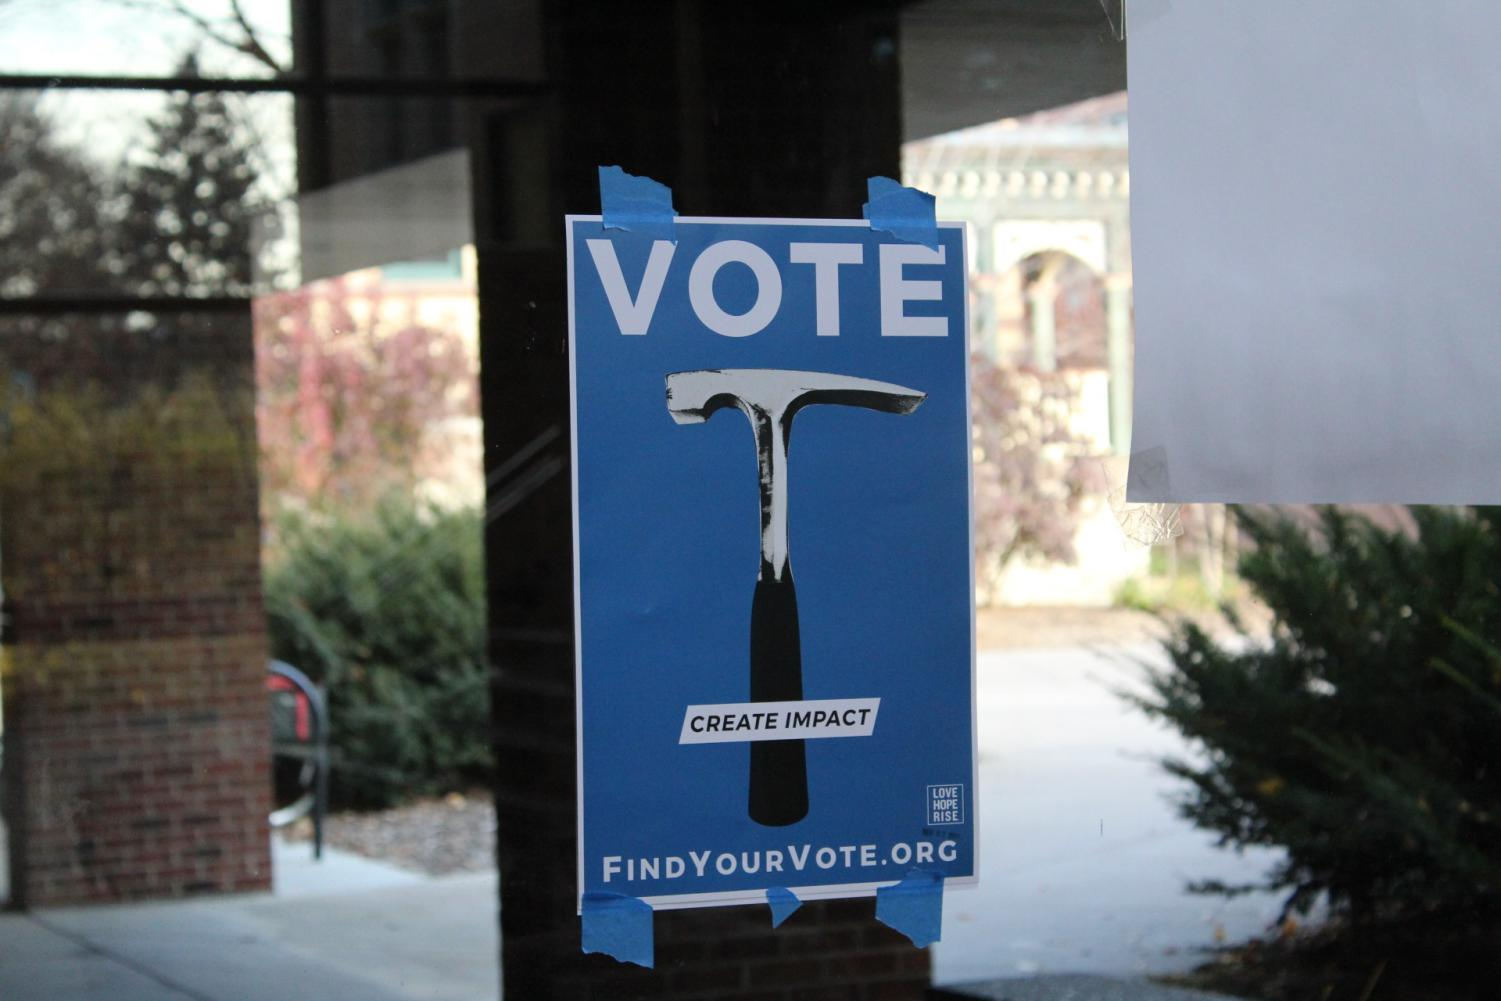 On Nov. 1, voting propaganda sprouted up around campus.